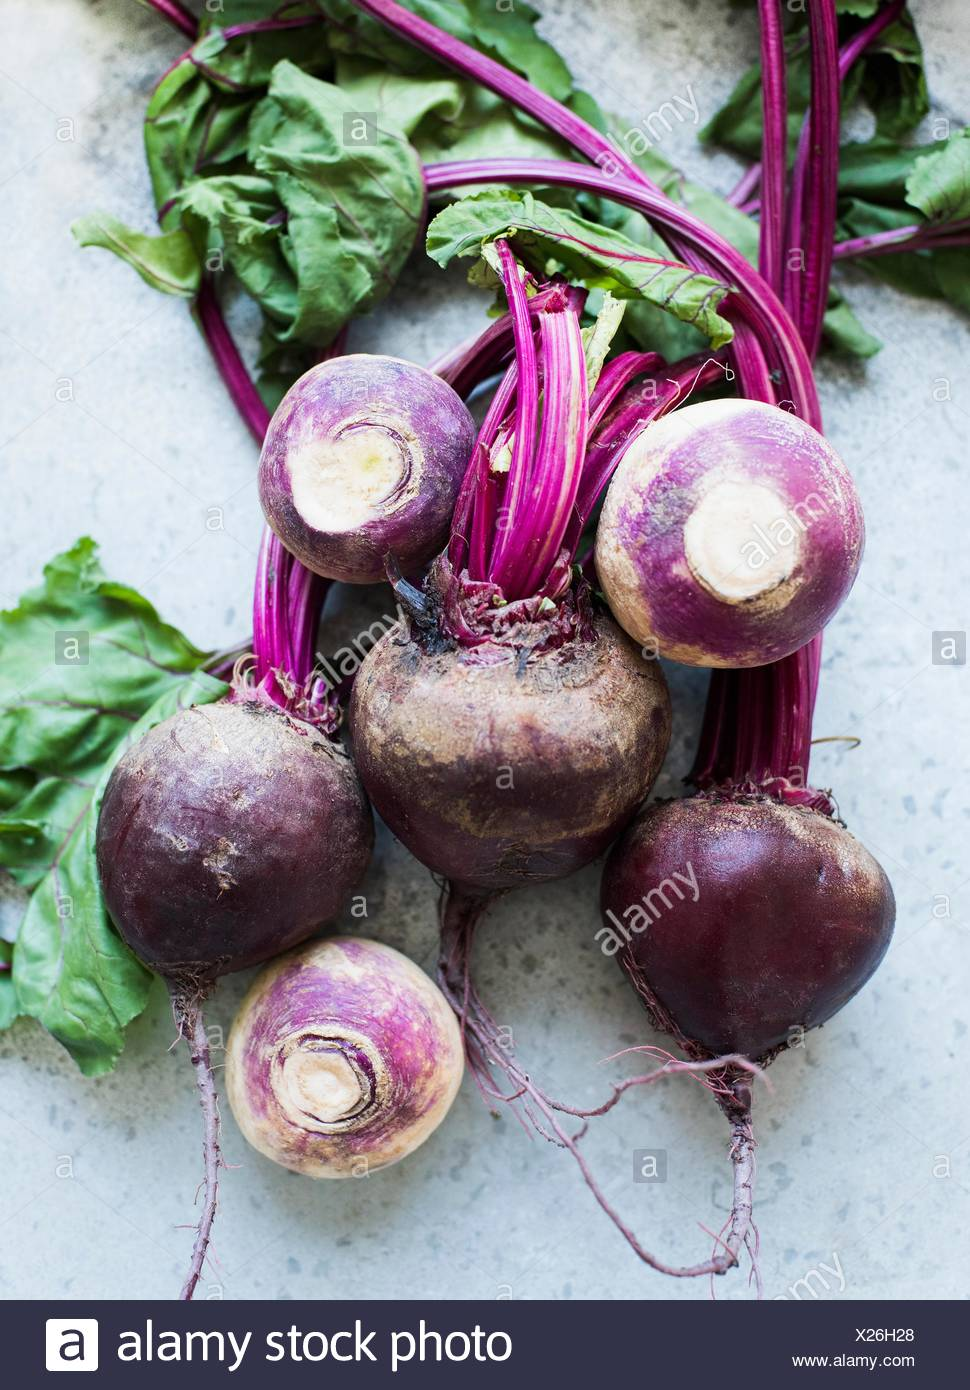 Overhead view of bunch of beetroots and turnips - Stock Image